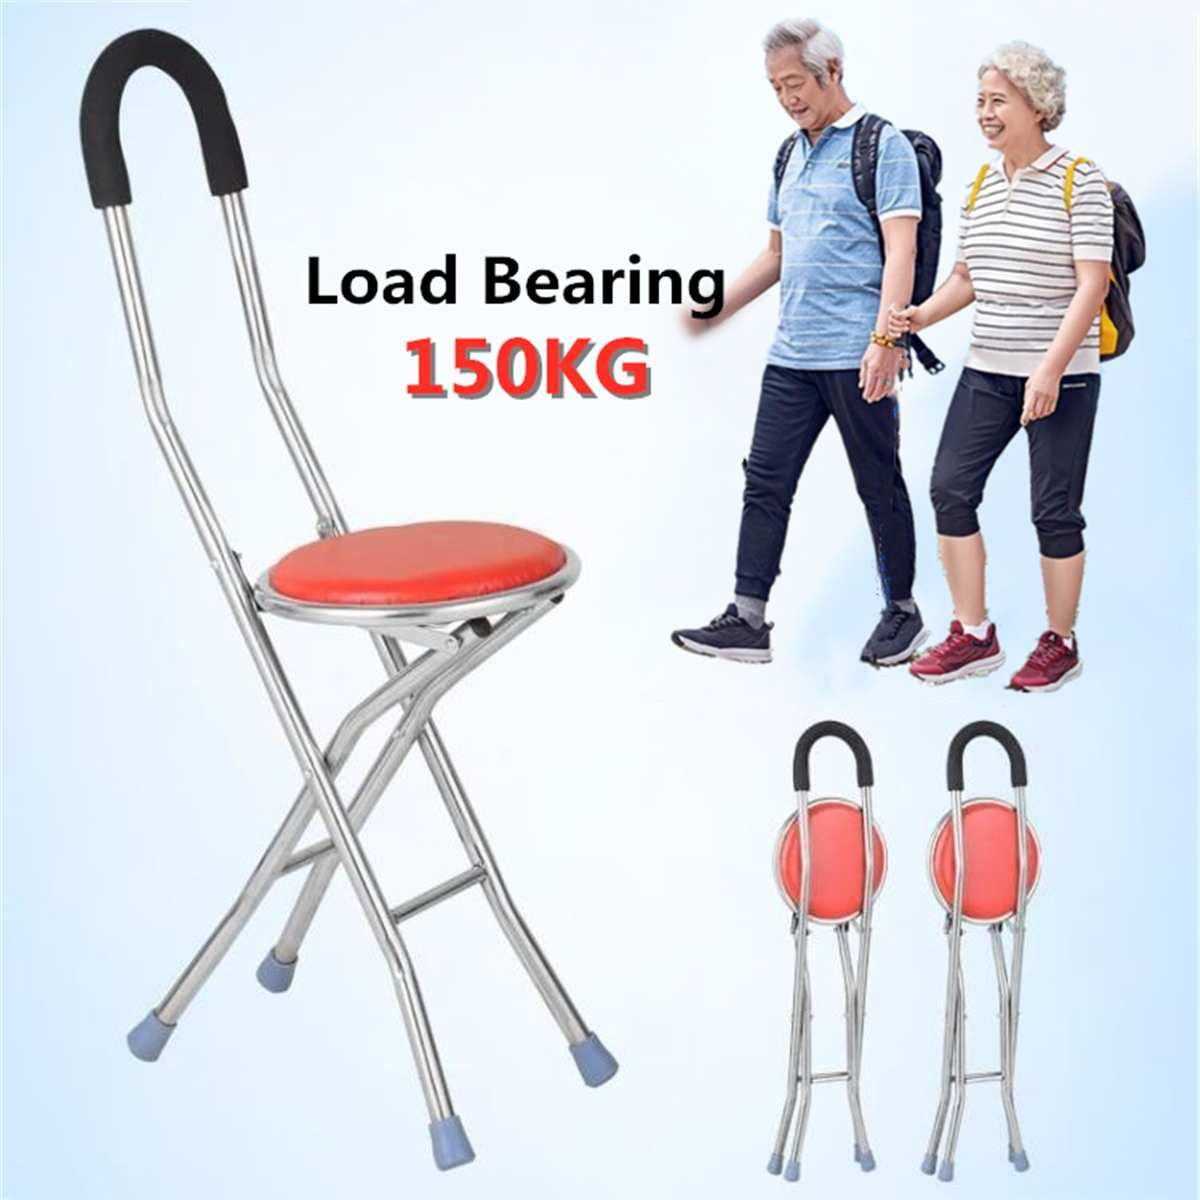 Foldable Elderly Care Walking Cane Stick 2 In 1 Chair Four Legs Up To 150 Kg Adjustable Cane Chair Stool Seat Portable Cr In 2020 Elderly Care Walking Canes Cane Stick